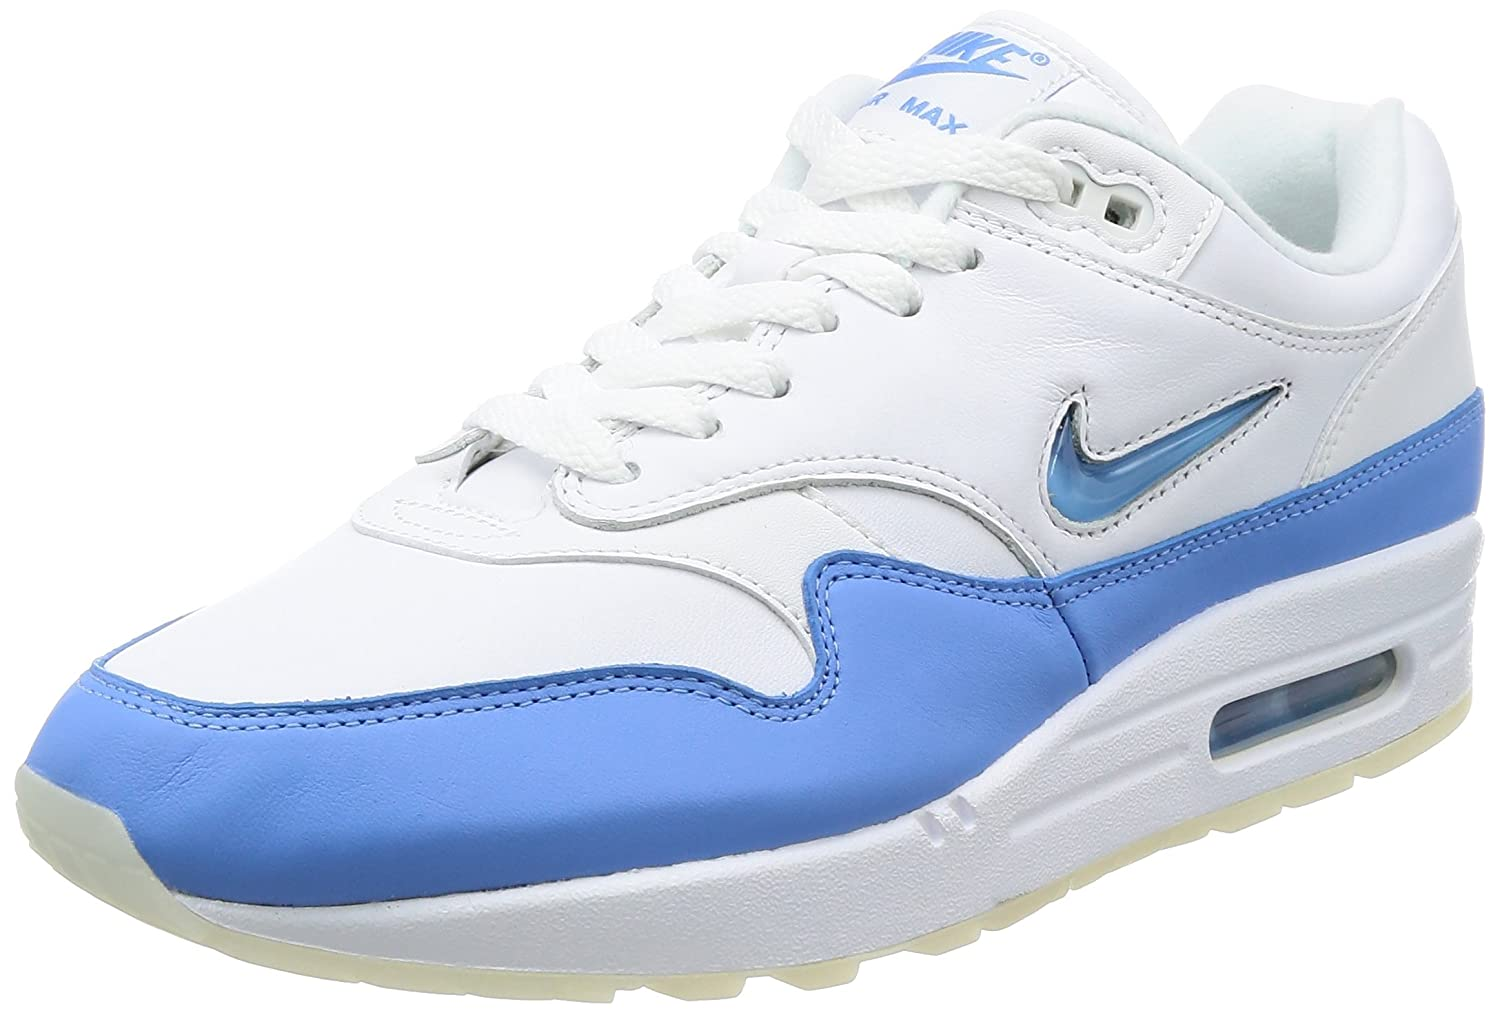 Nike Air Max 1 Premium SC Mens Running Trainers 918354 Sneakers Shoes B00GOFDBM4 11 D(M) US|White, Unversity Blue